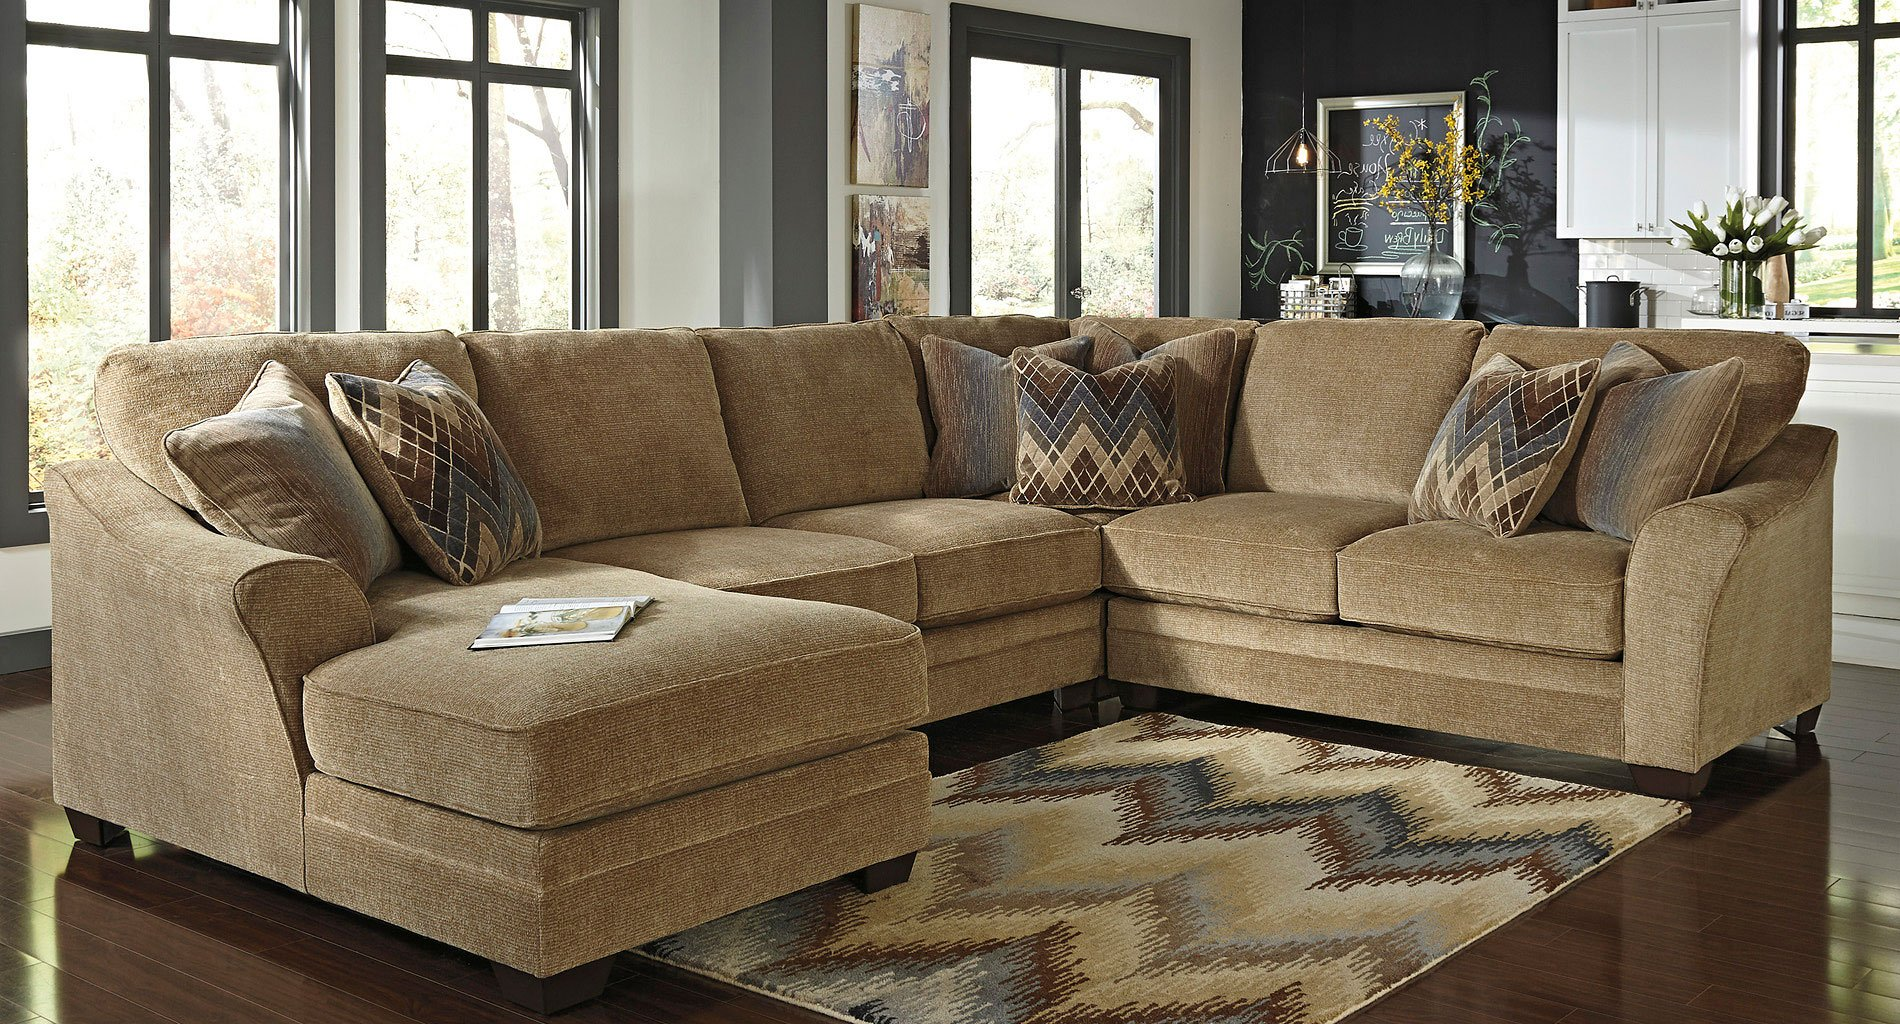 Lonsdale Barley Modular Sectional W Chaise By Benchcraft